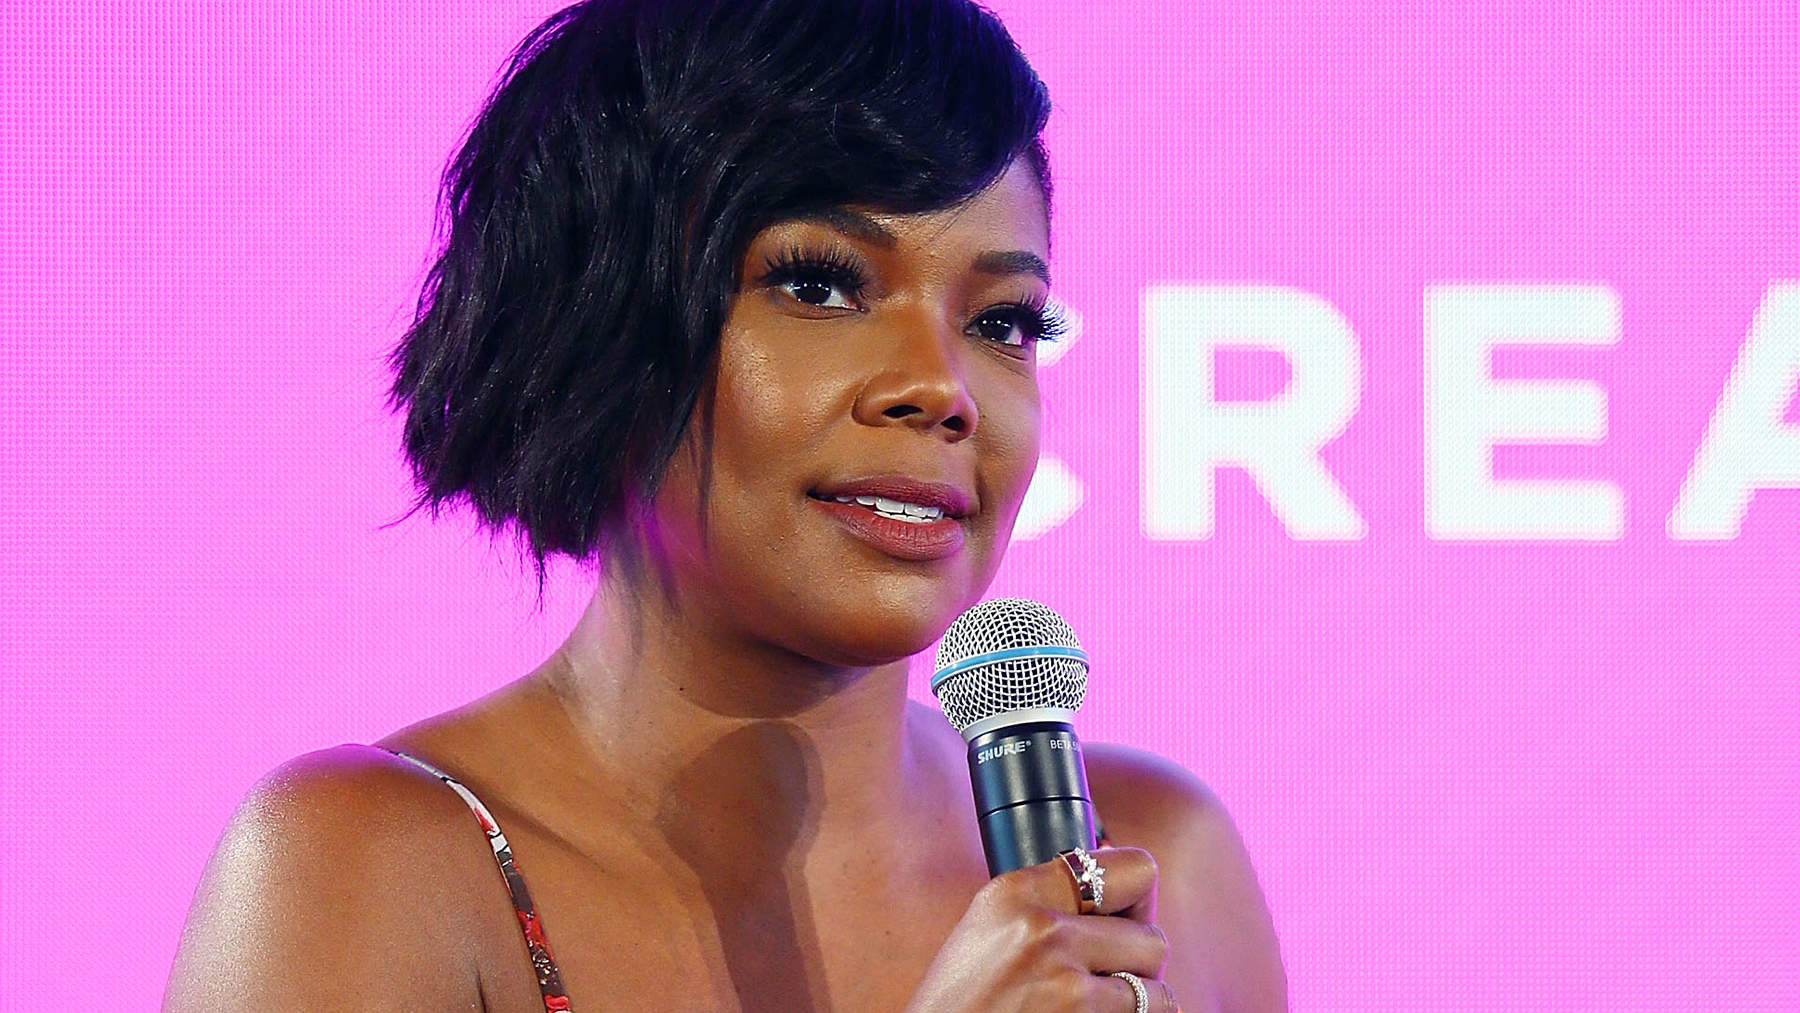 Gabrielle Union on Her Adenomyosis Diagnosis: 'I Finally Got Some Answers'